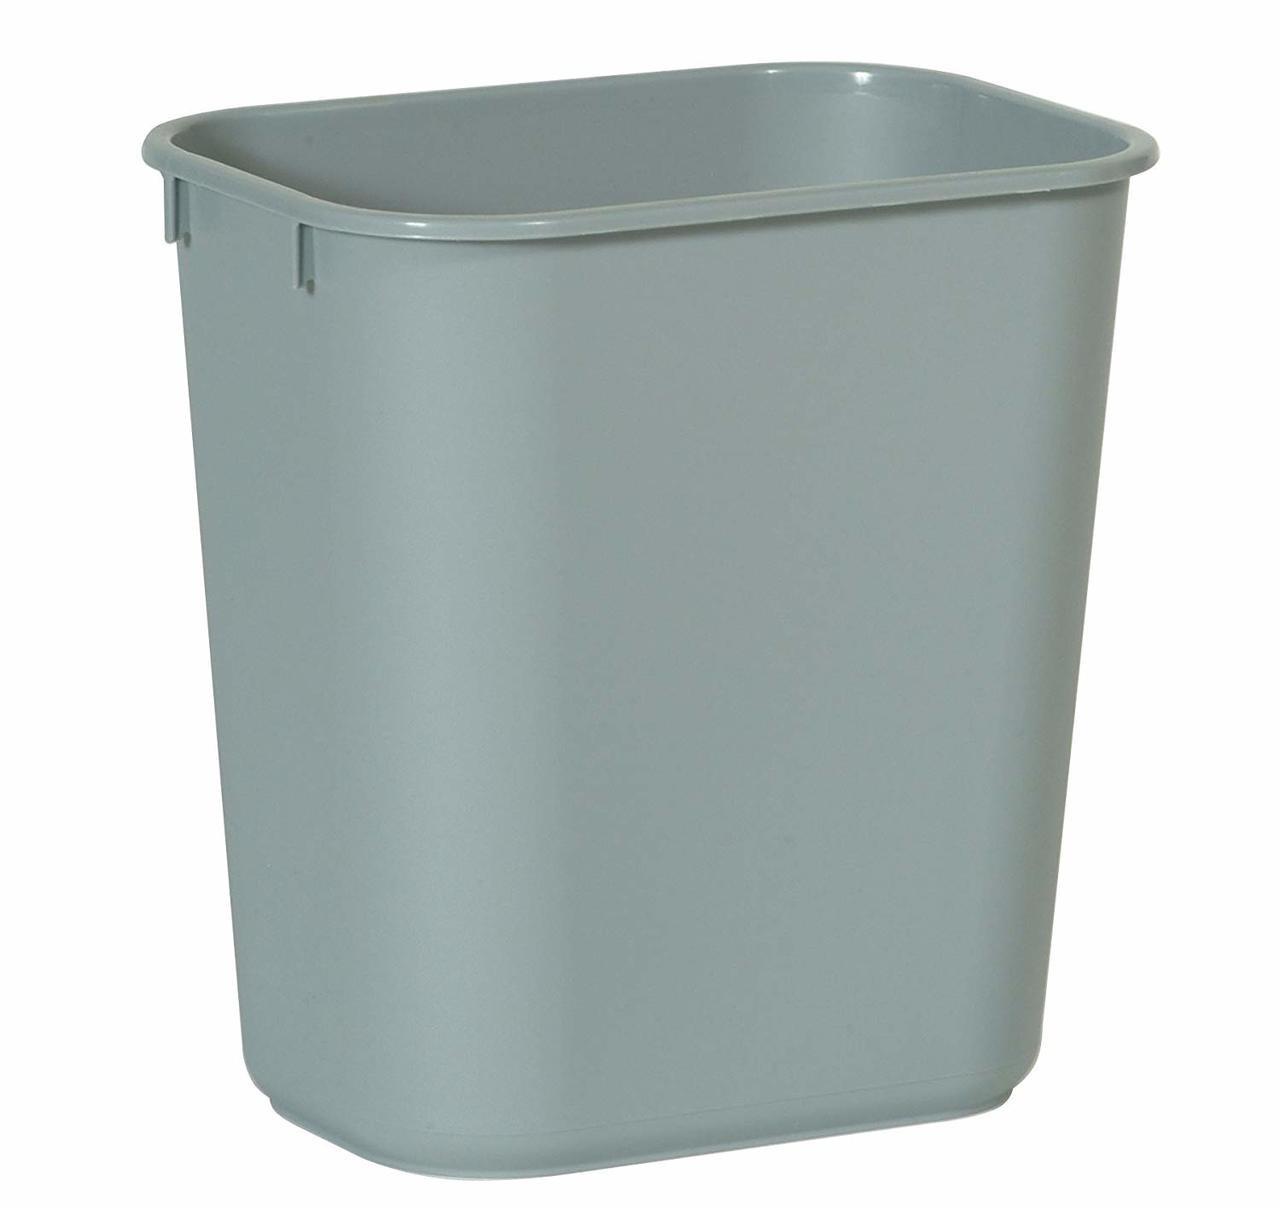 Rubbermaid Rectangular Wastebasket 12.9 L - Grey